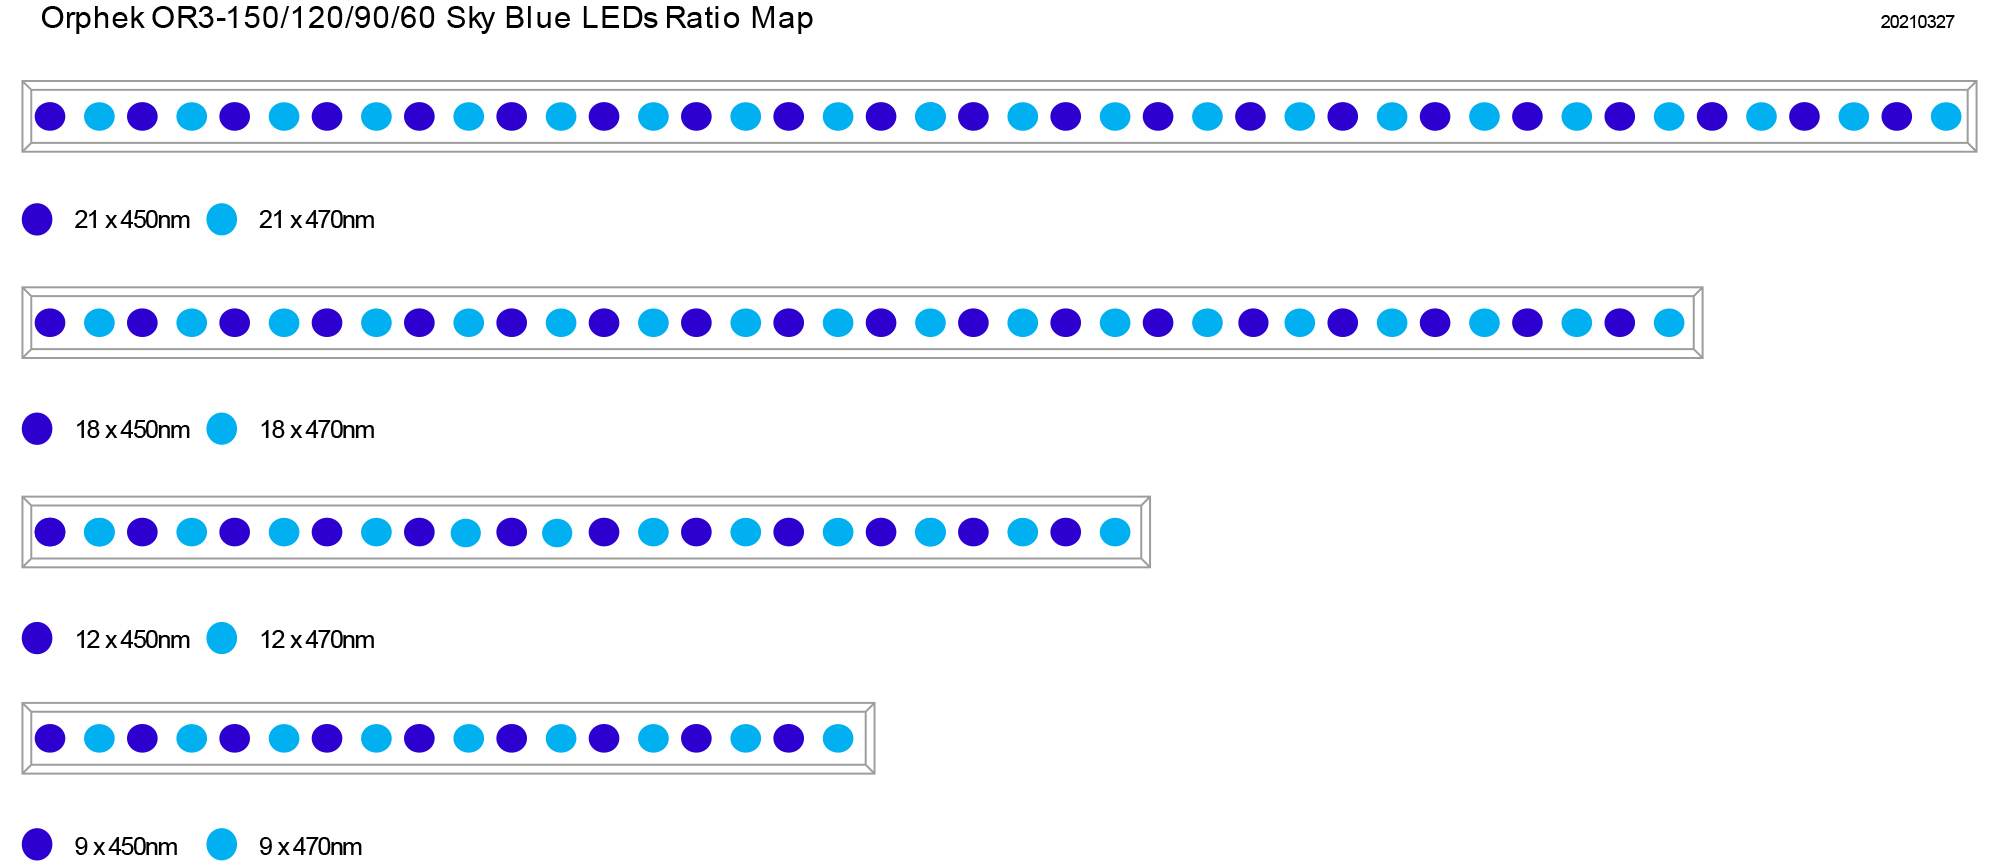 OR3-150-120-90-60-Sky-Blue-LED-ratio-map-20210327